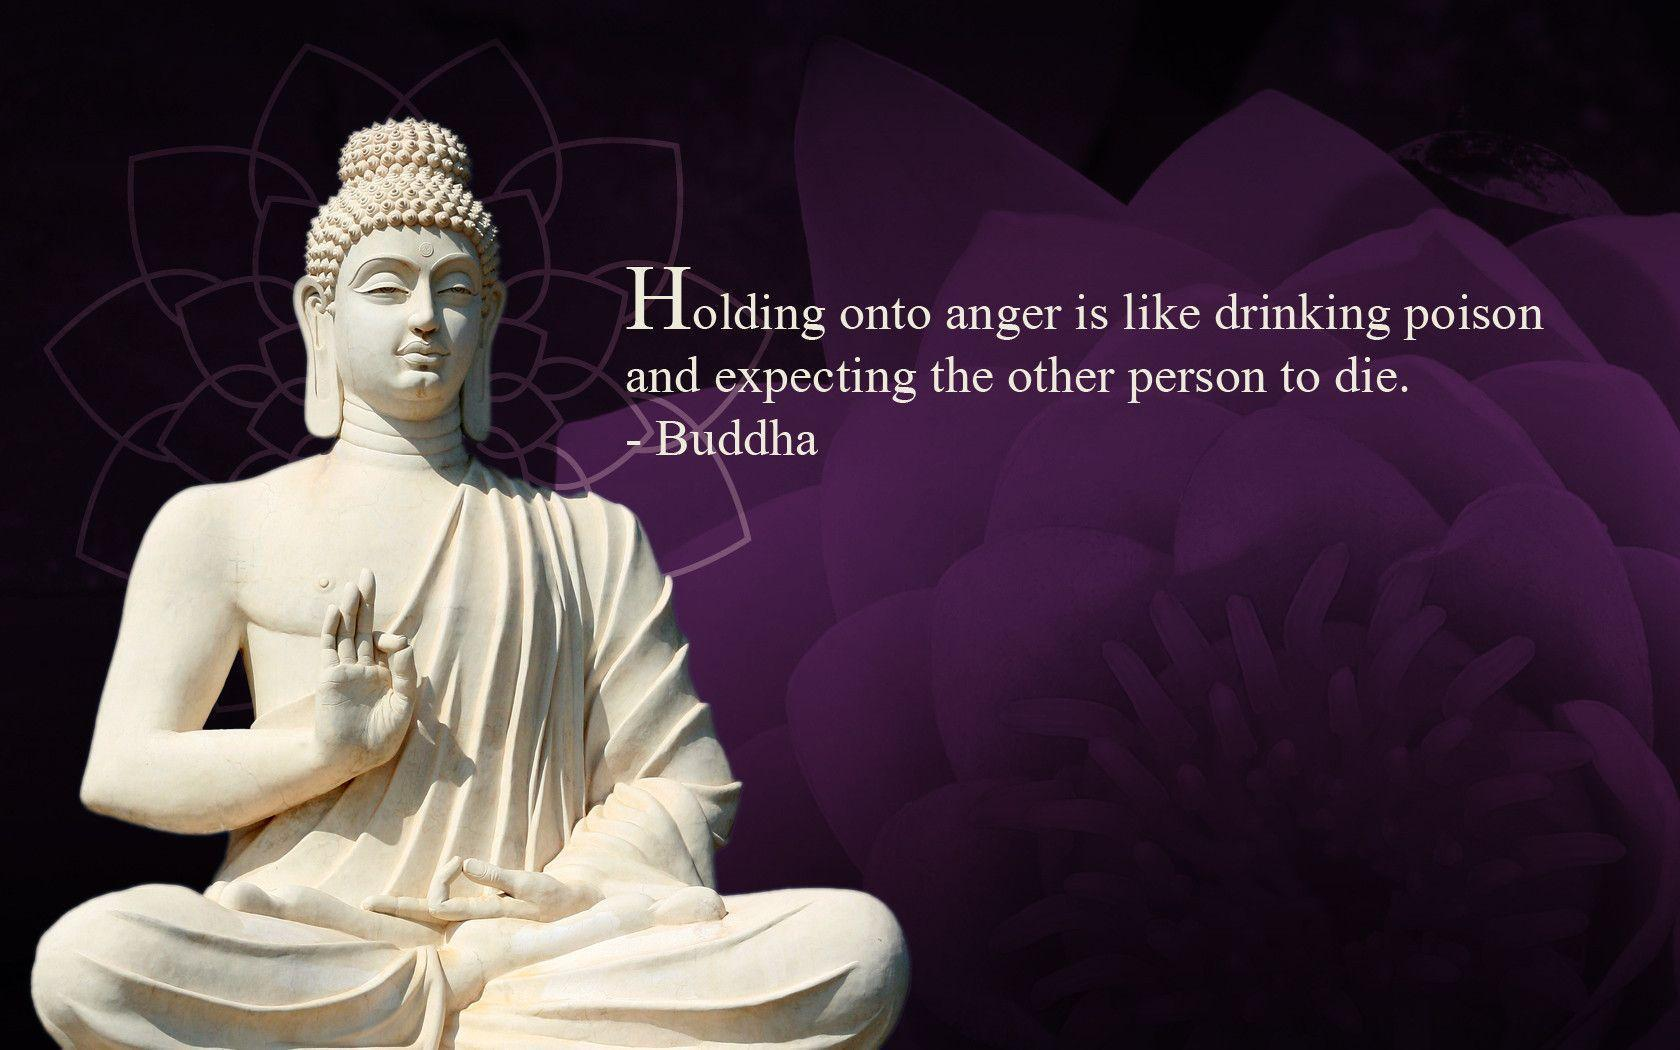 Buddhist Quote Wallpaper, Wallpaper, Buddhist Quote Wallpaper Hd .